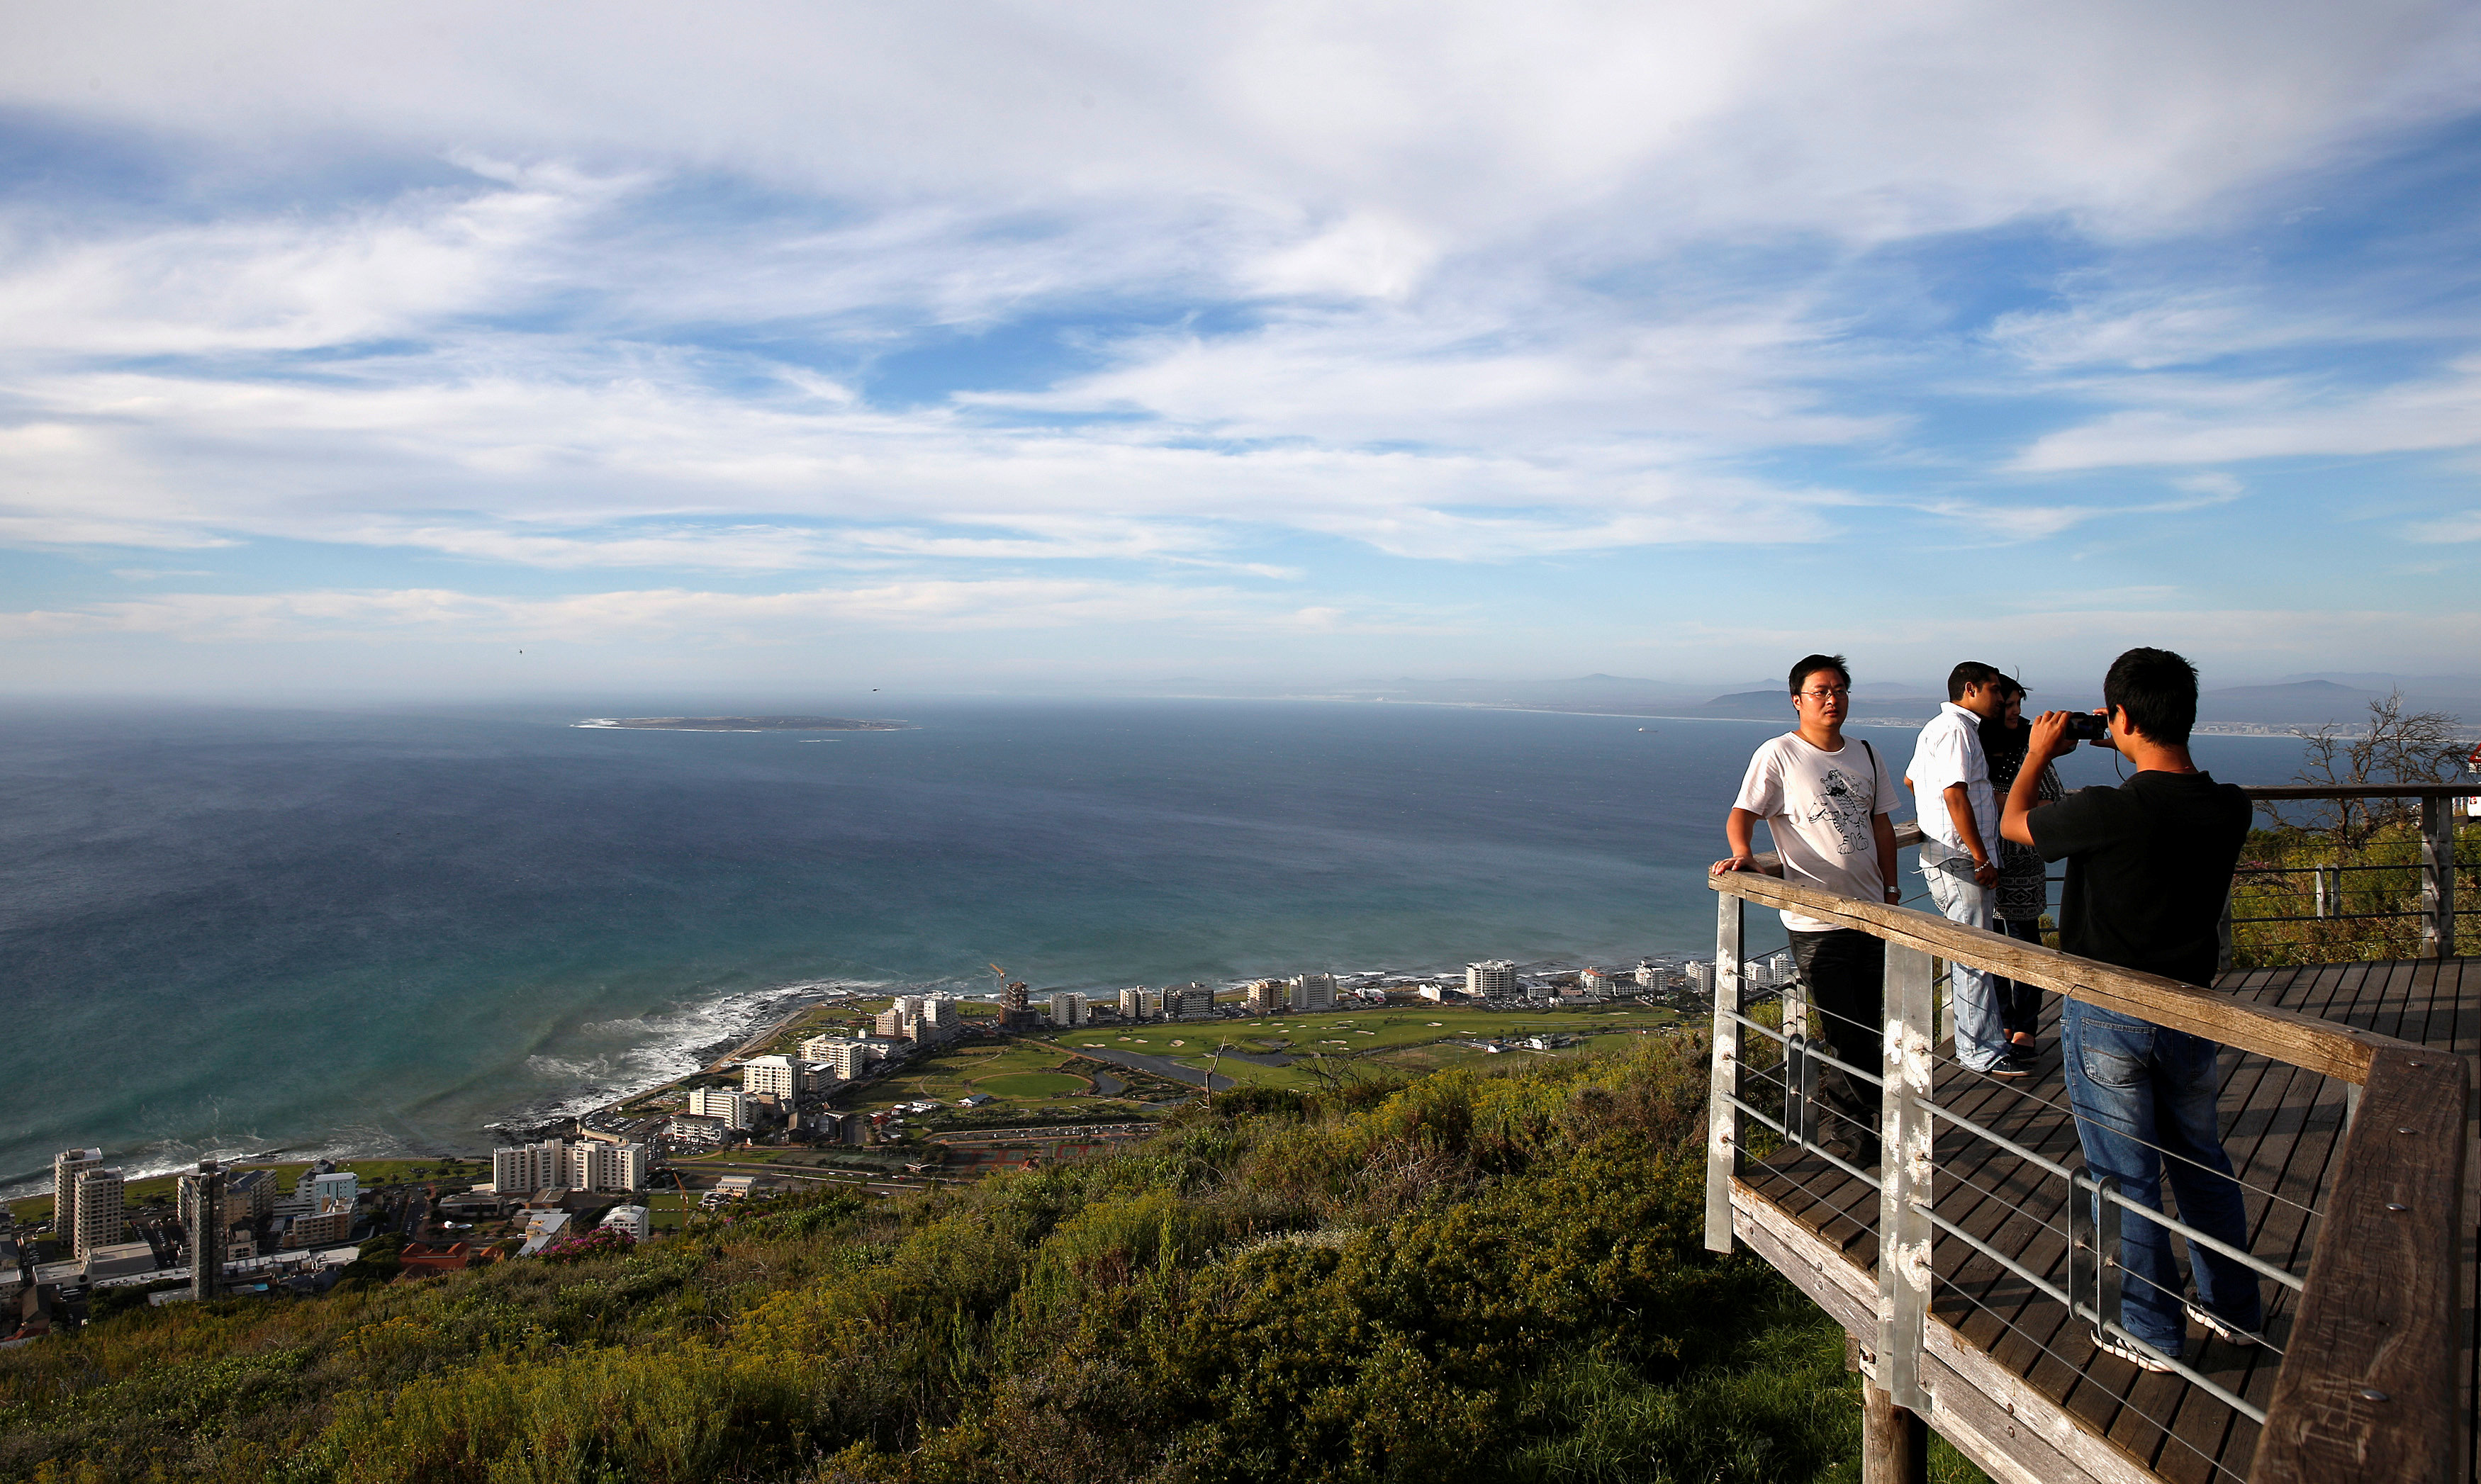 Tourists take pictures from a viewing platform in Cape Town, South Africa